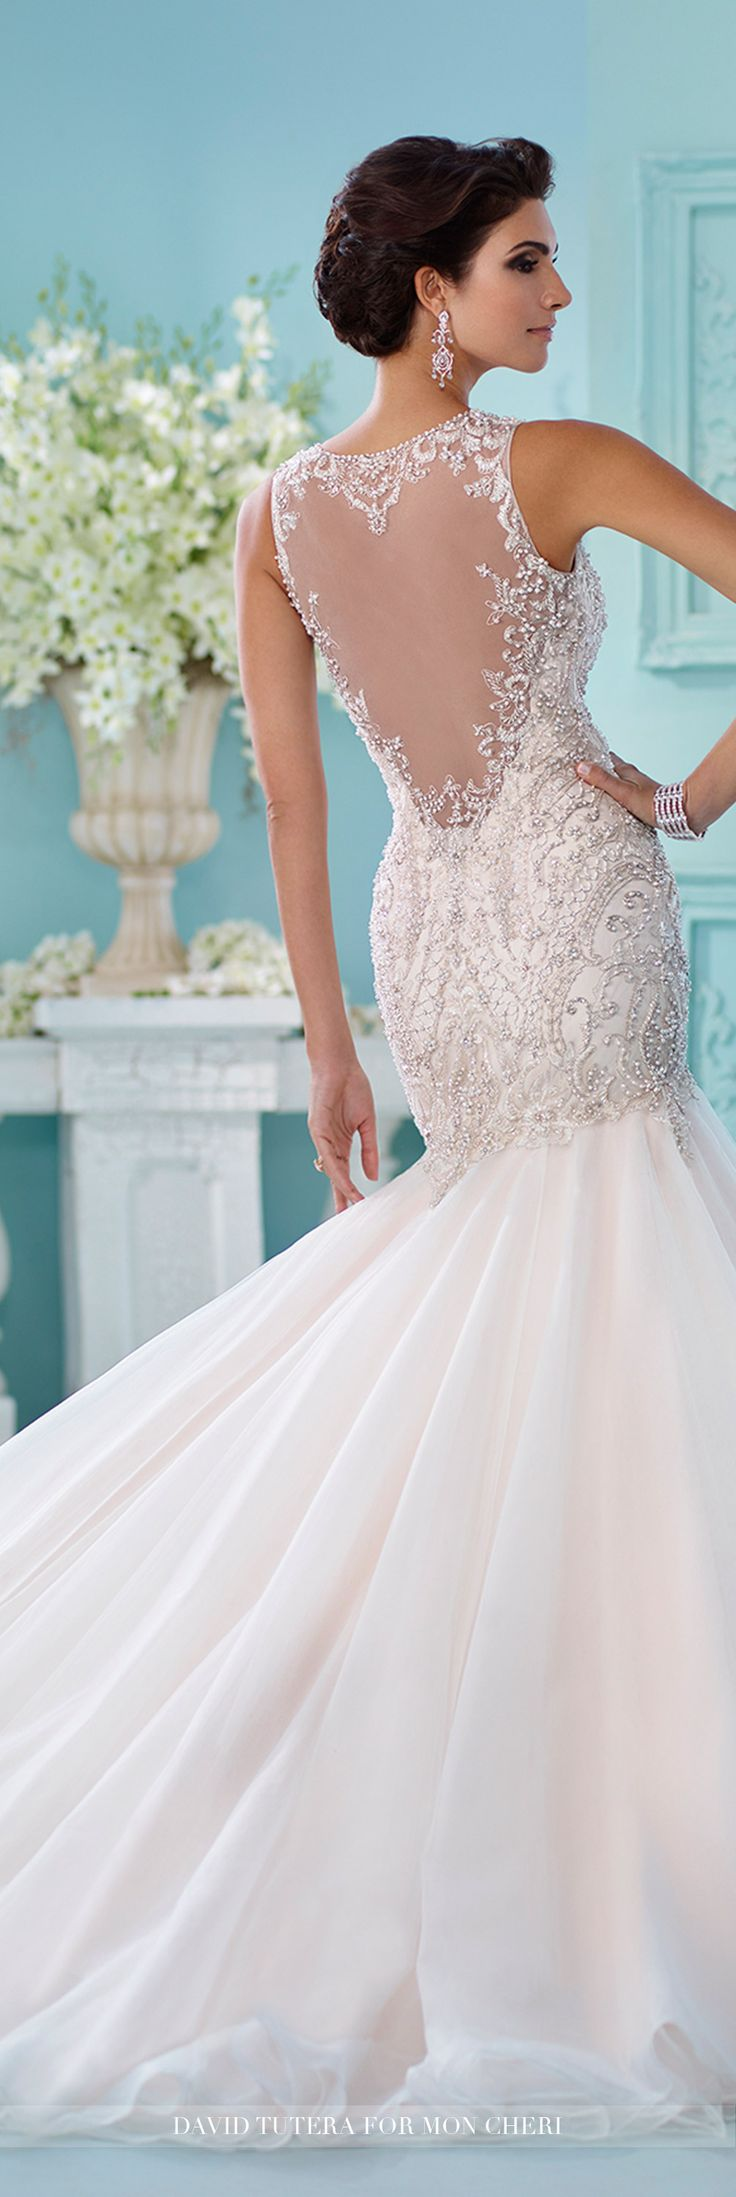 25 best ideas about trumpet wedding dresses on pinterest for Trumpet style wedding dresses